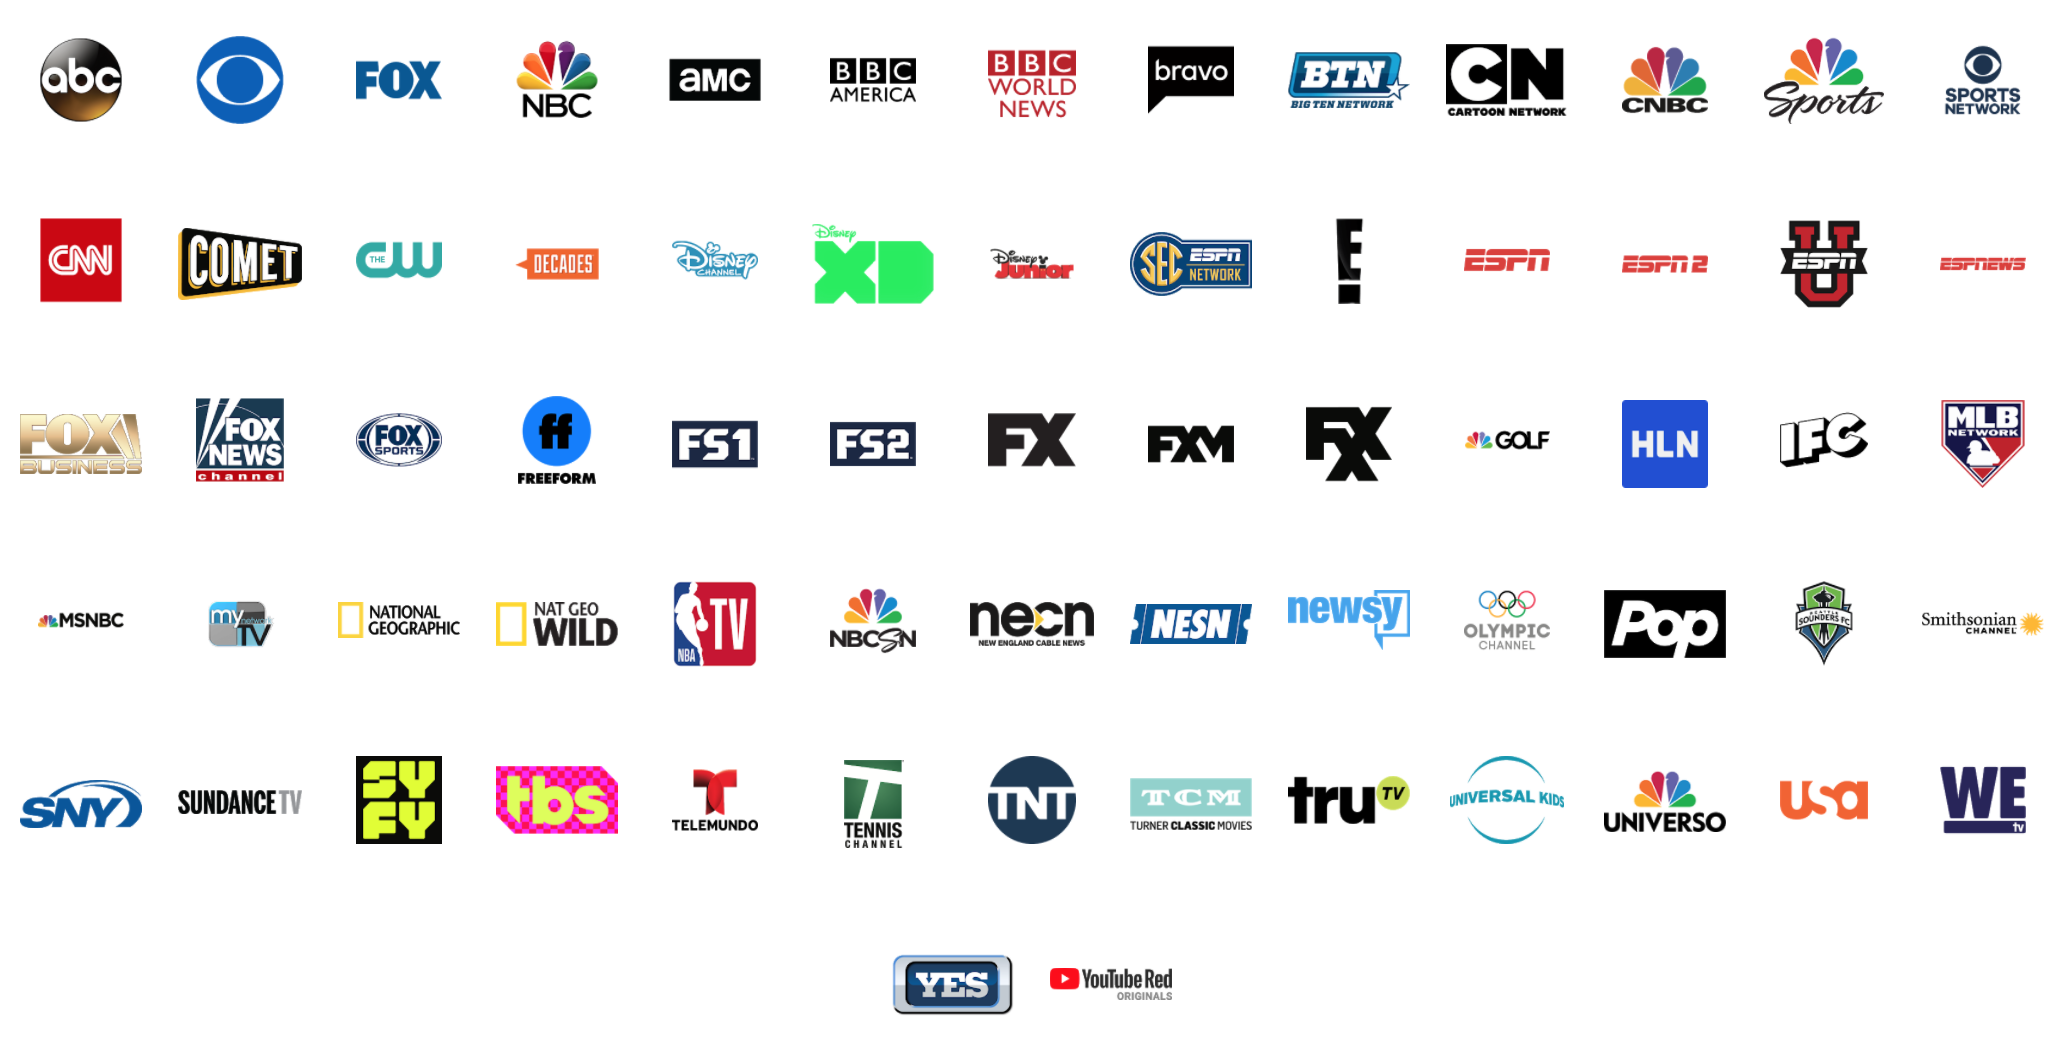 Regional channels: a selection of sites